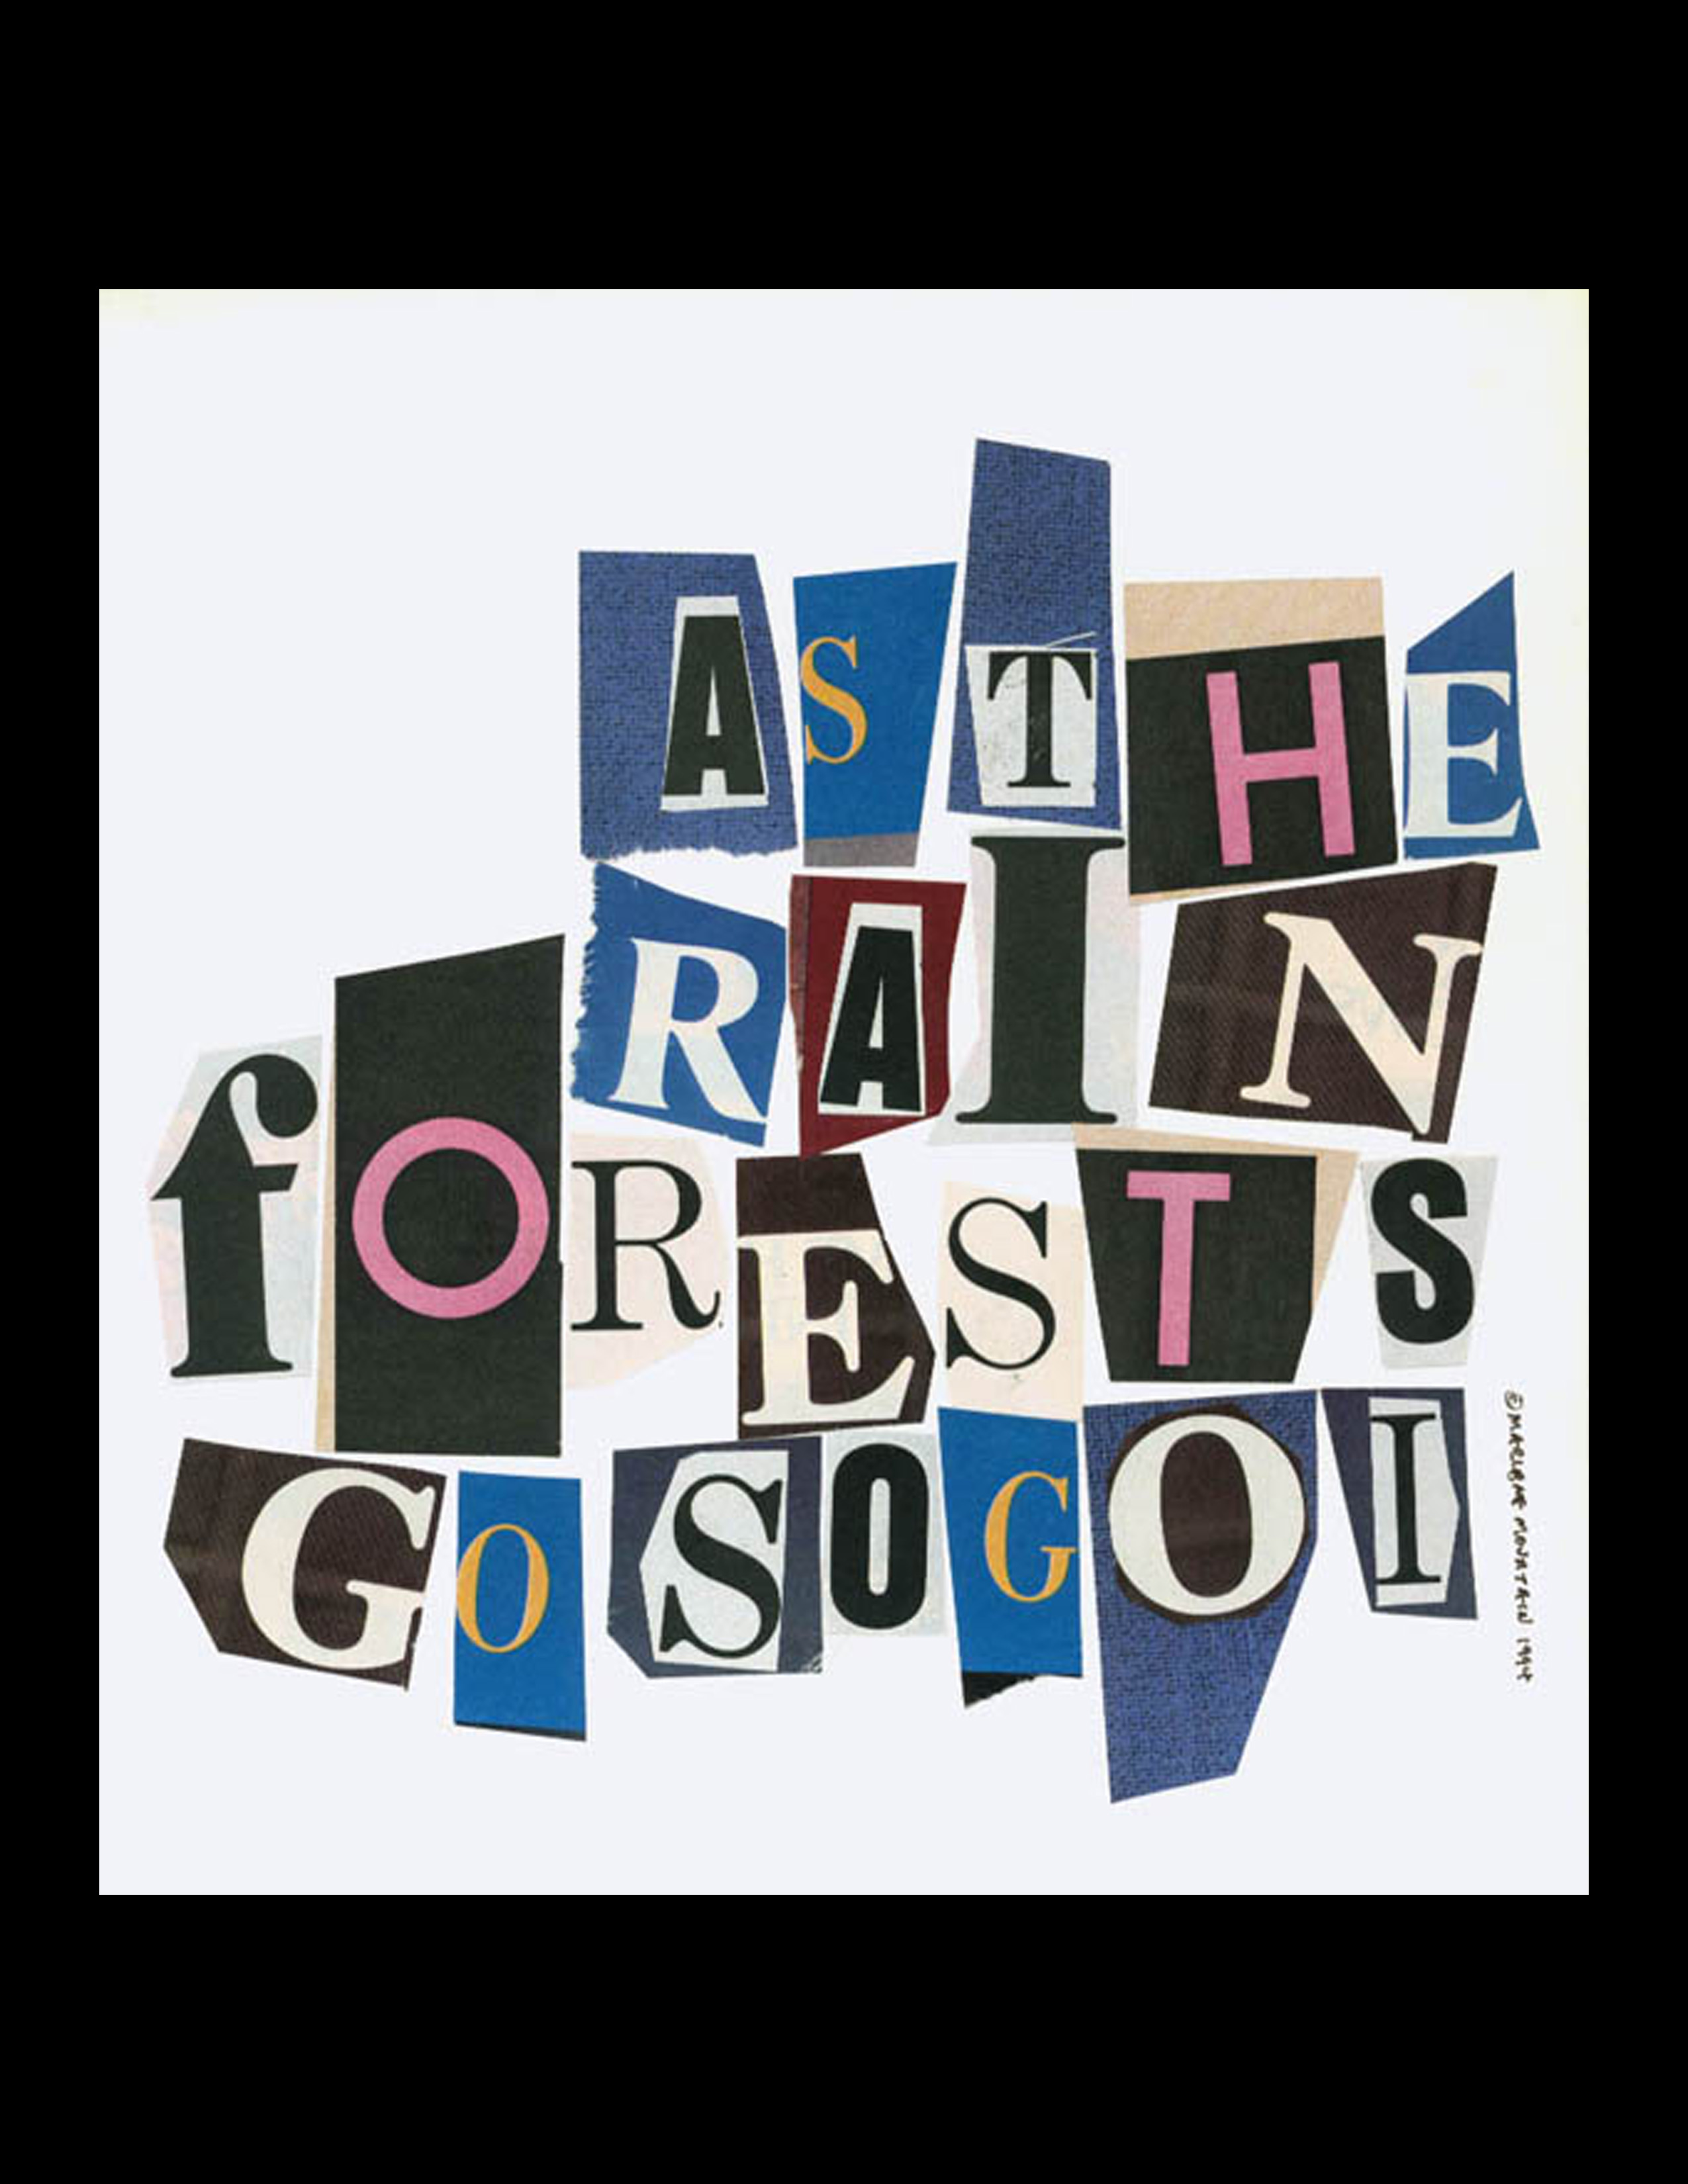 as the rain forest goes (1992)